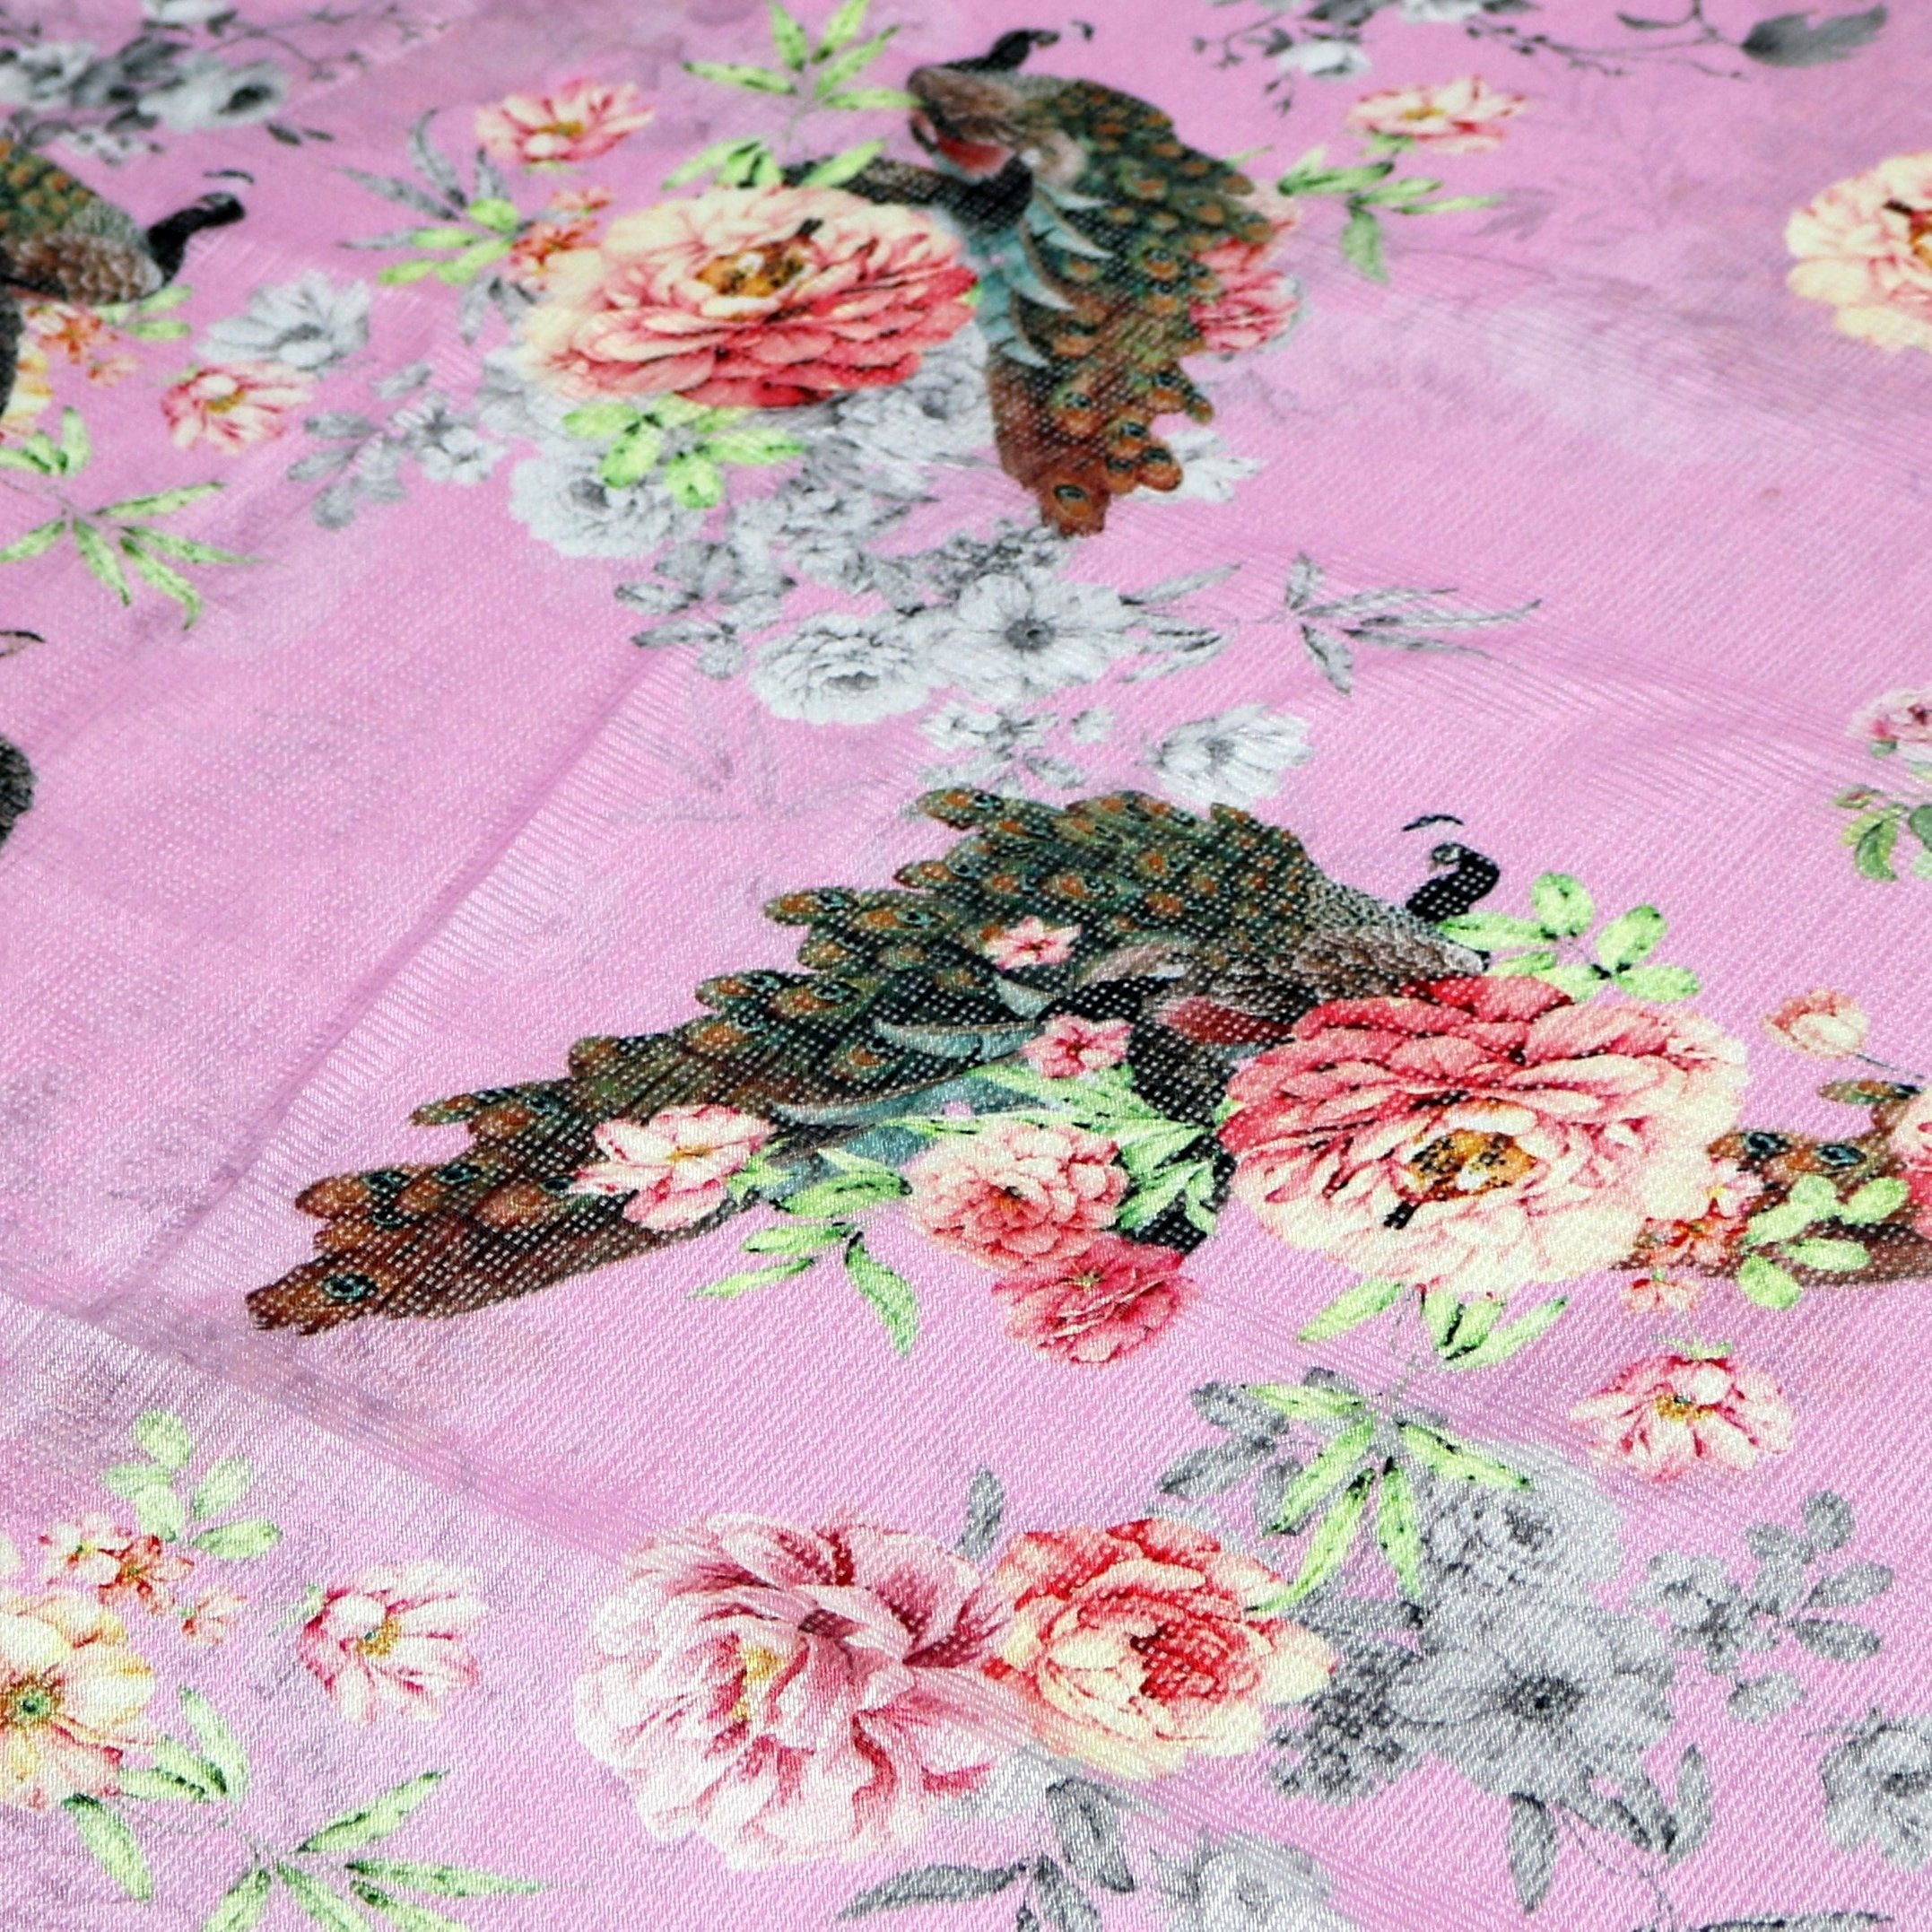 Pink Peacock Floral Digital Printed Kota Doria Fabric - Wholesale FAB VOGUE